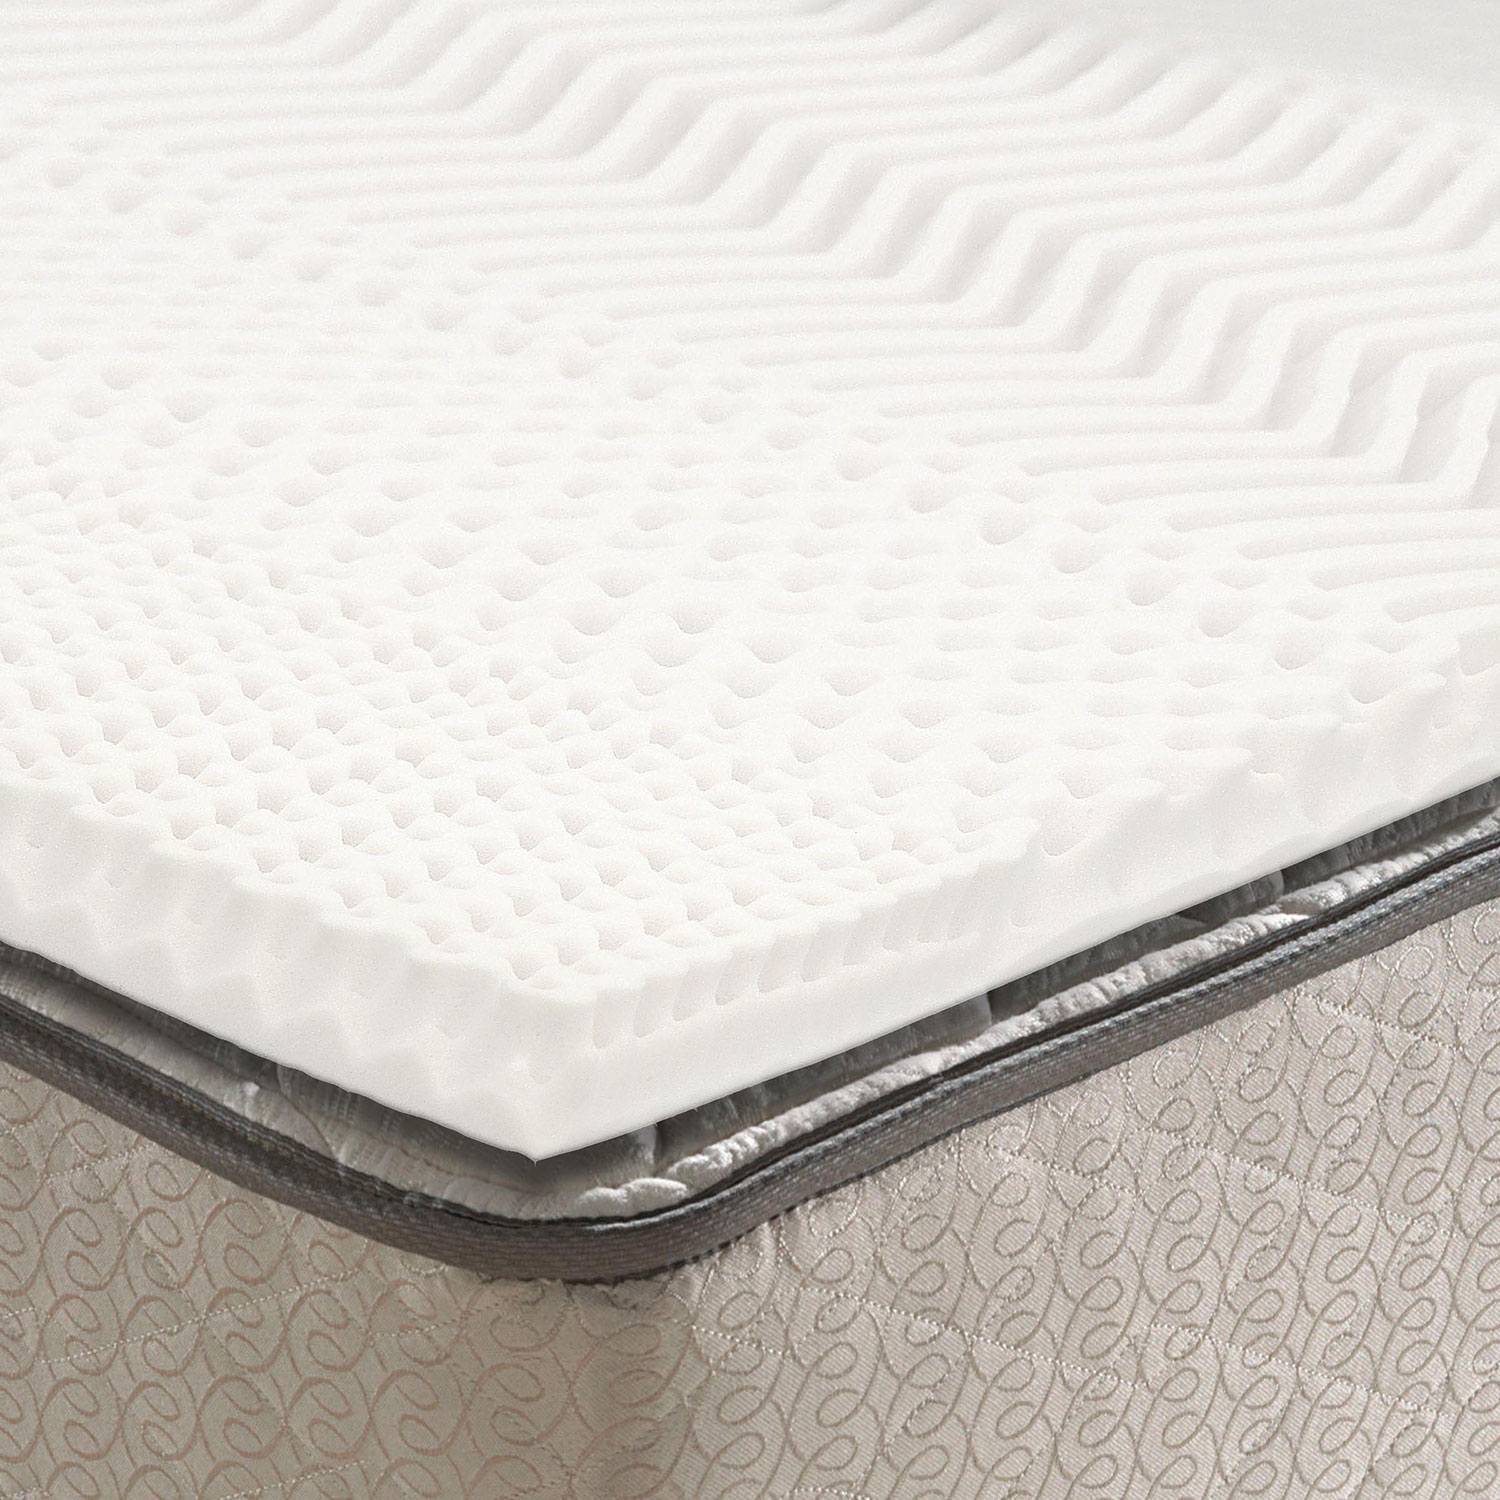 bor shop store product pad borgata the hotel mattress xlrg